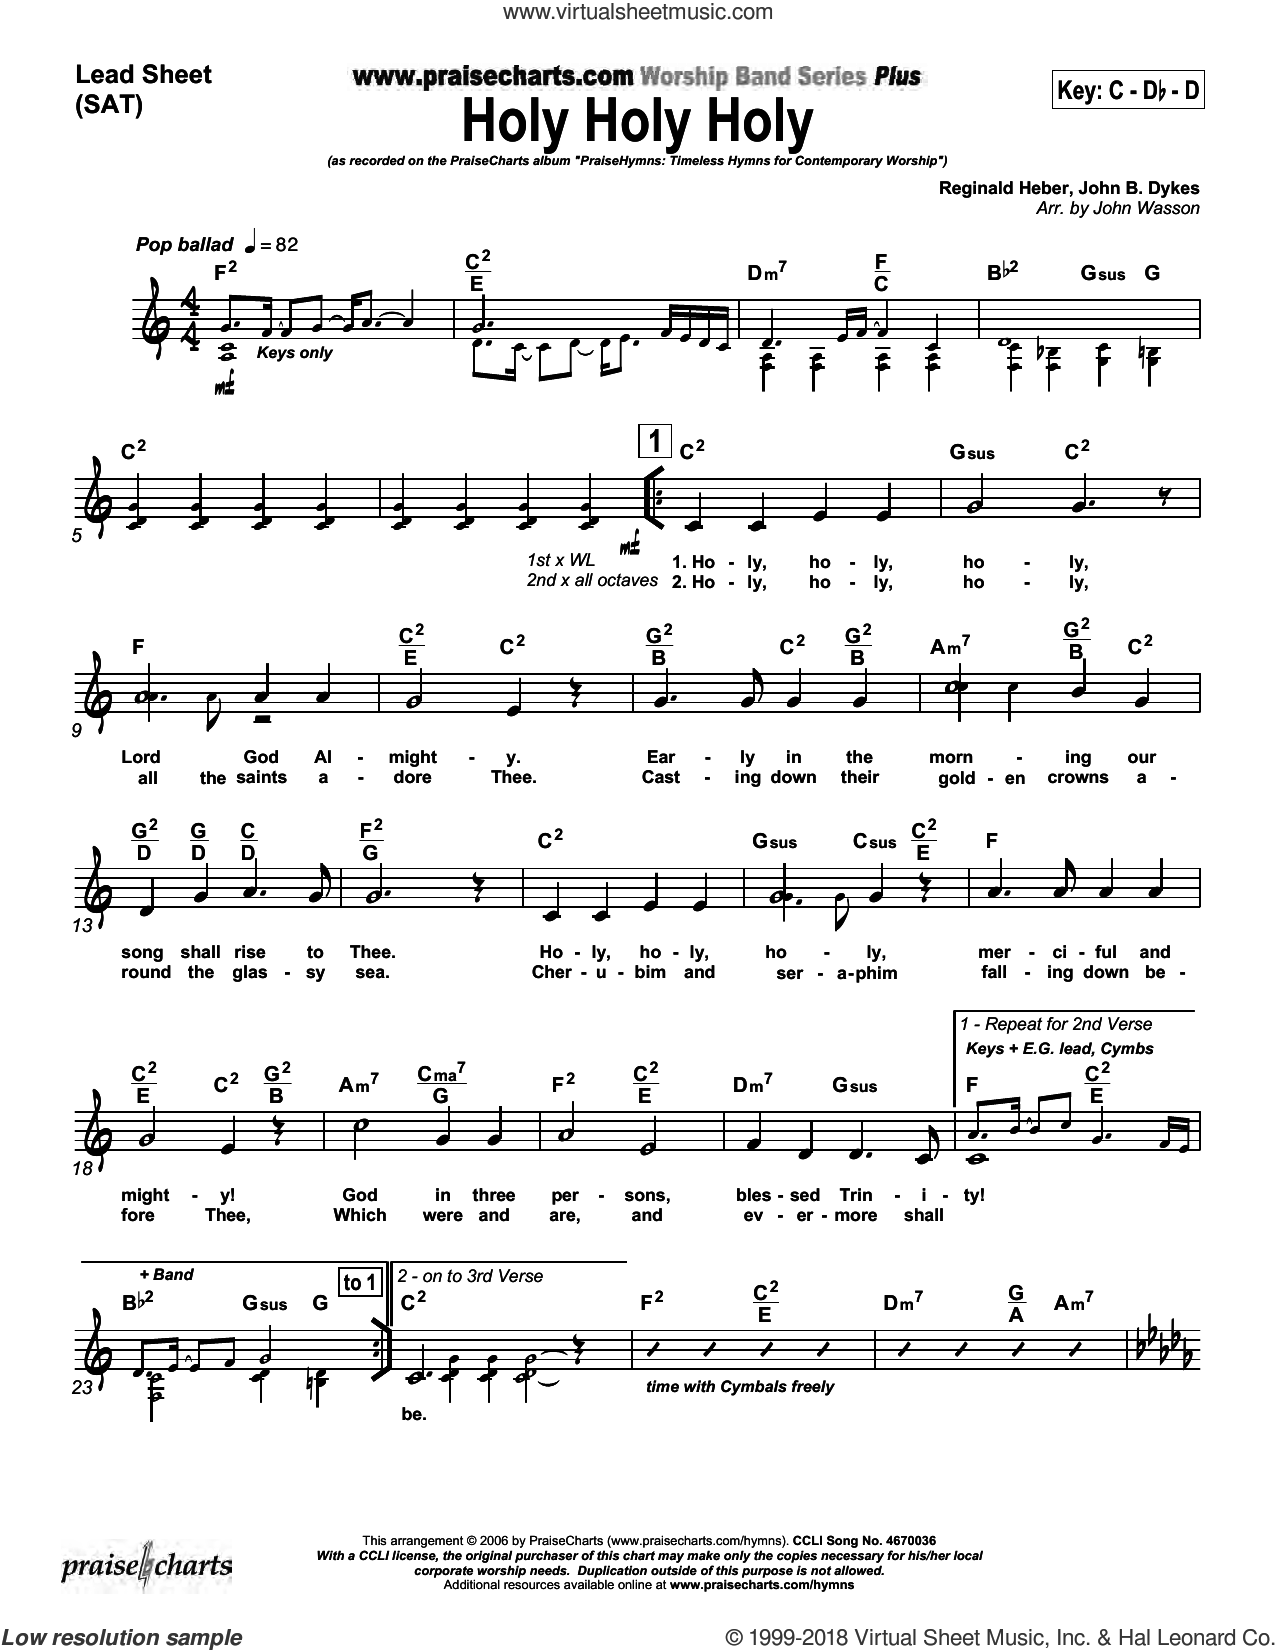 Holy Holy Holy sheet music for concert band (orchestration) by John Wasson and John Dykes/Reginald Heber, intermediate skill level